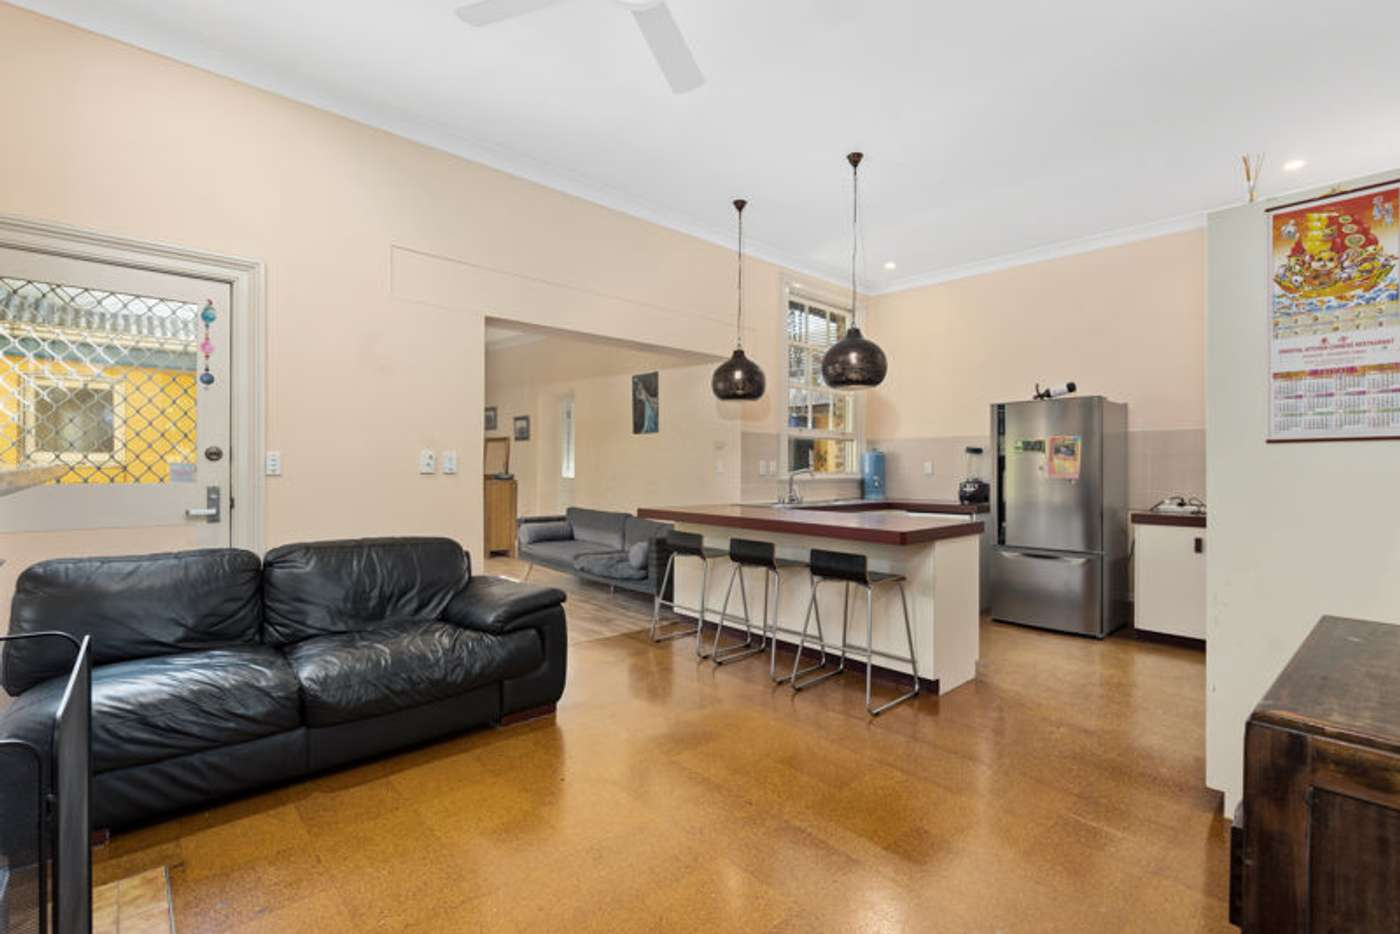 Sixth view of Homely house listing, 647 Waterfall Way, Bellingen NSW 2454